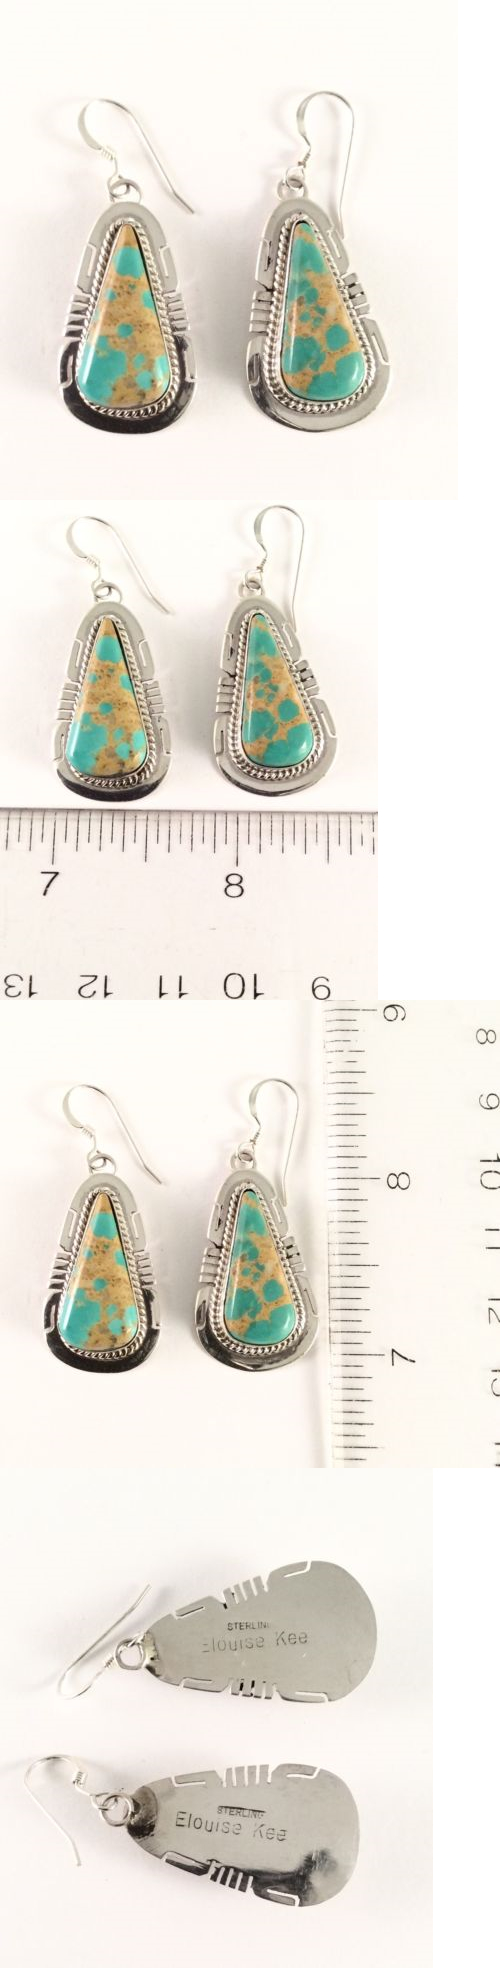 Earrings 98497: Sterling Silver Navajo Indian Native American Boulder Turquoise Earrings. Signed -> BUY IT NOW ONLY: $117.0 on eBay!